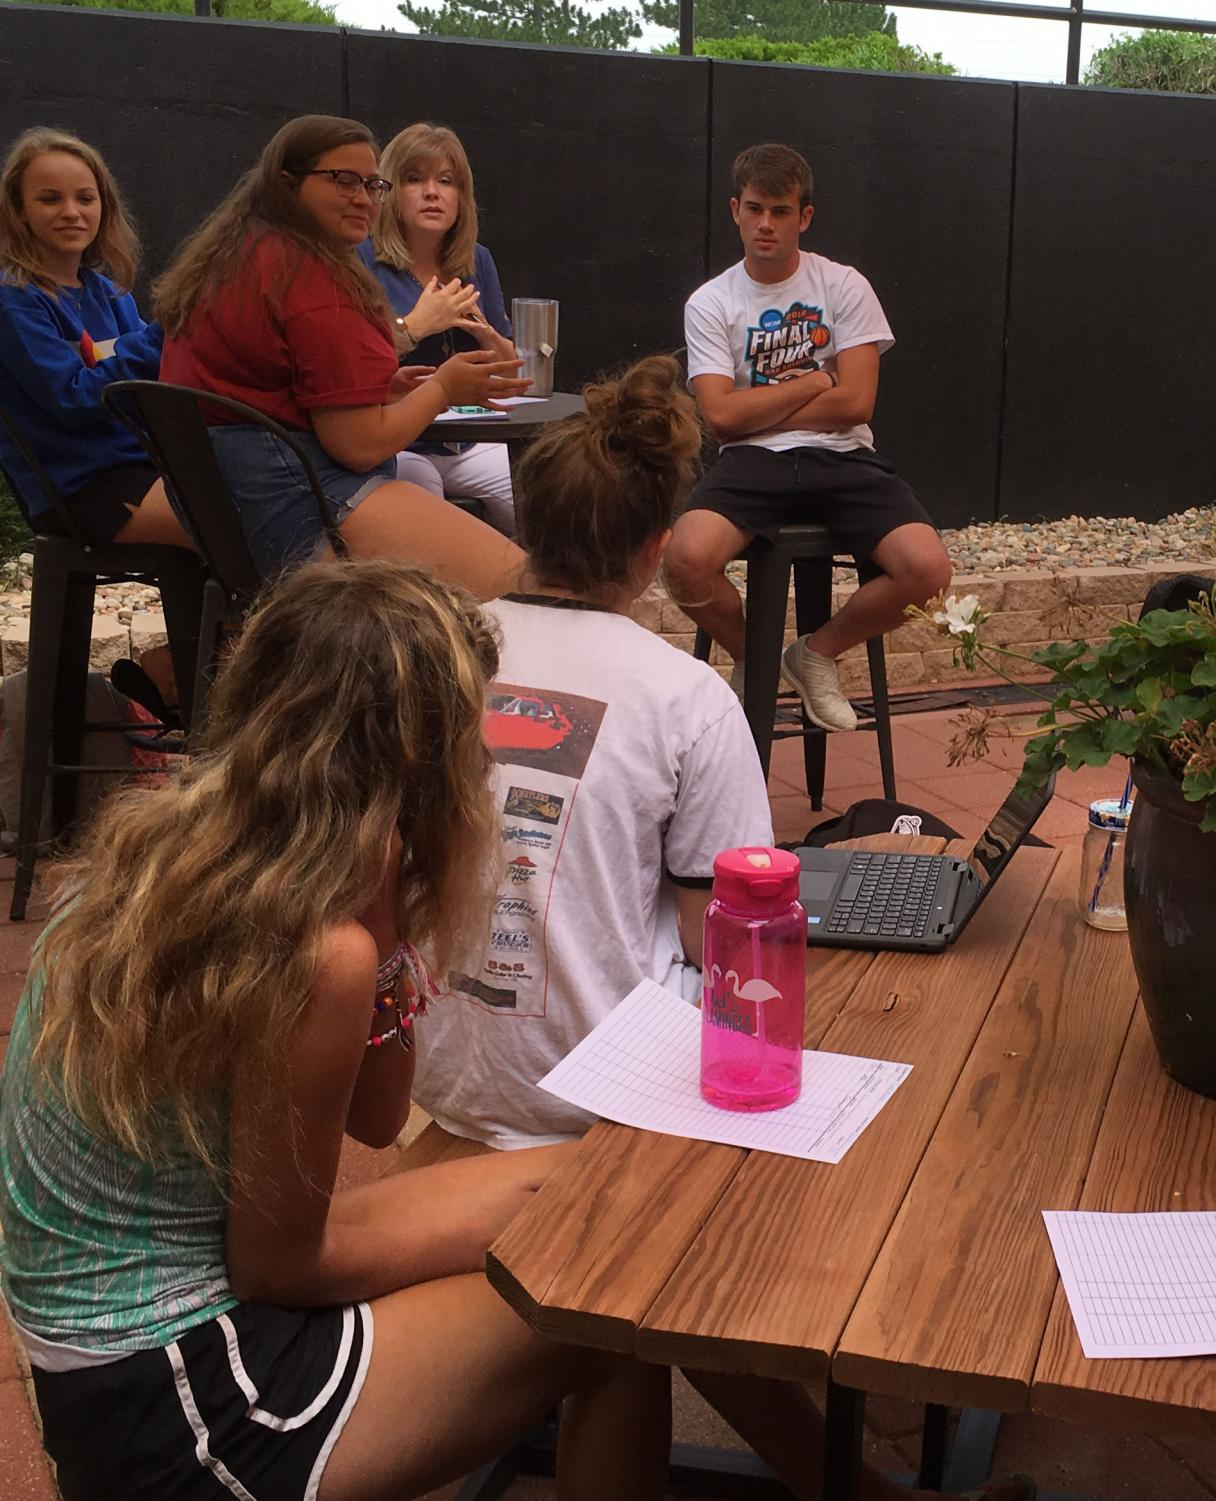 During the StuCo meeting on Aug. 21, officers discussed the Back-to-School Bash and Homecoming committees. Leading the meeting was President Peyton Thorell, senior, and Vice President Shyann Schumacher, senior.